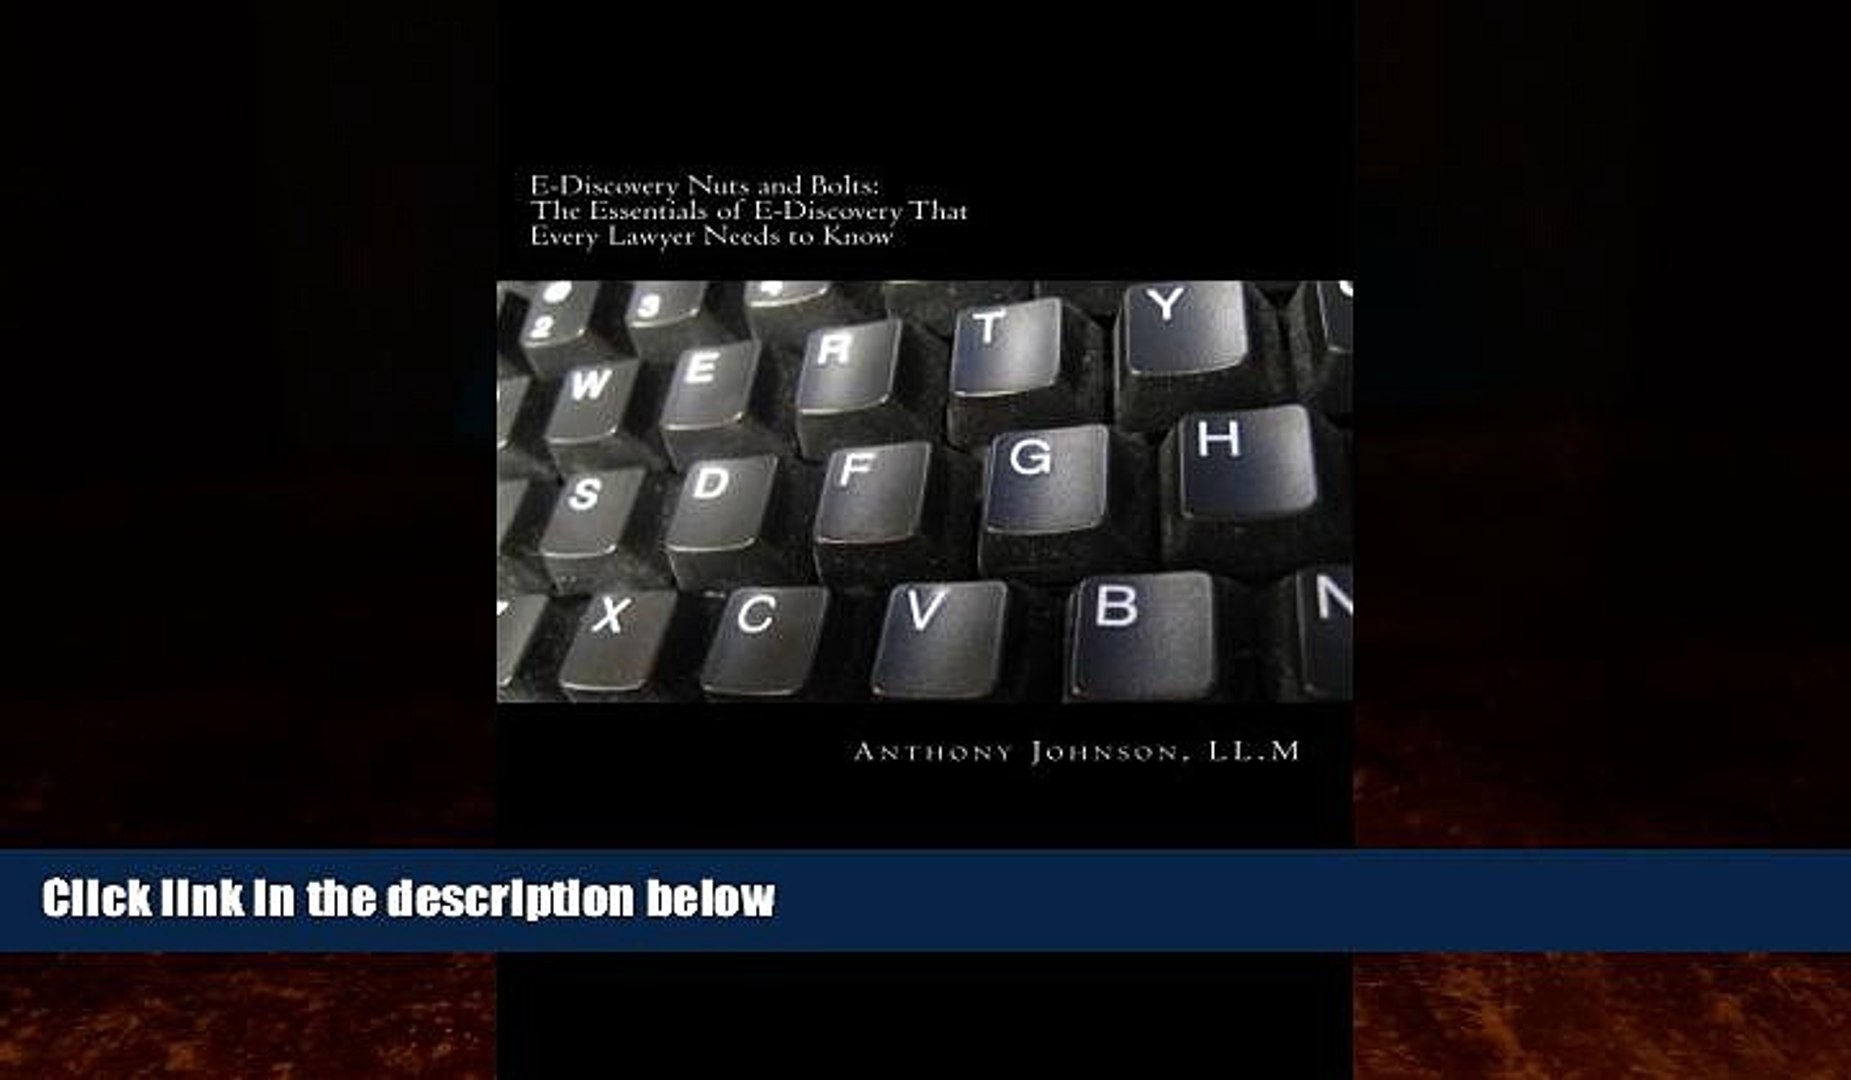 Big Deals  E-Discovery Nuts and Bolts: The Essentials of E-Discovery That Every Lawyer Needs to